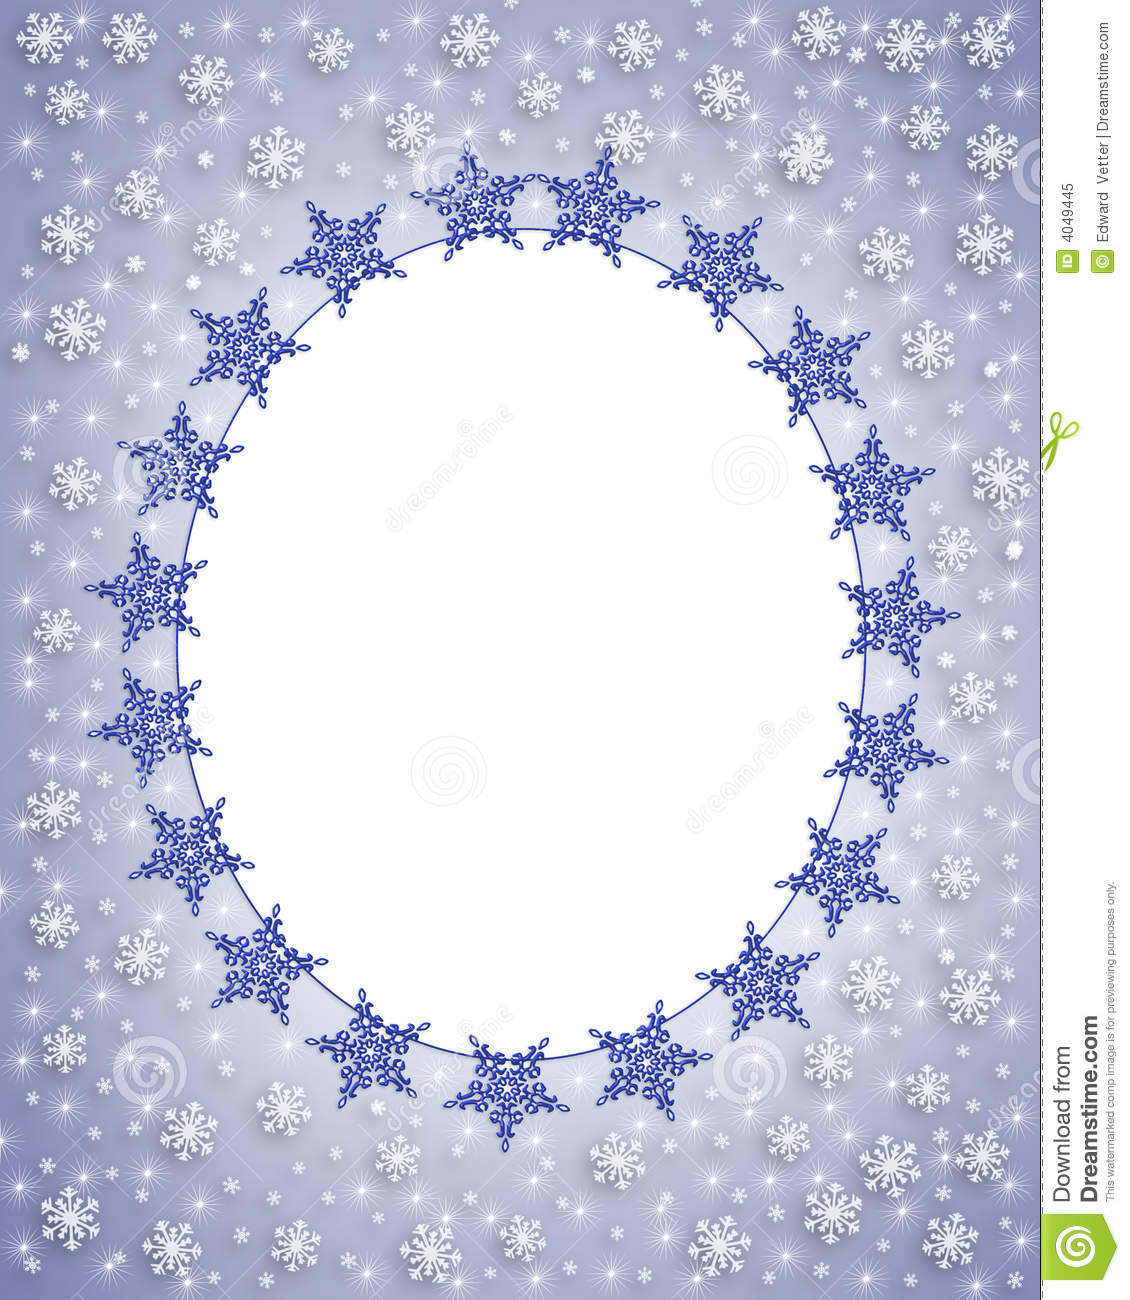 Snowflake Border Winter Frame Royalty Free Stock Photo - Image ...